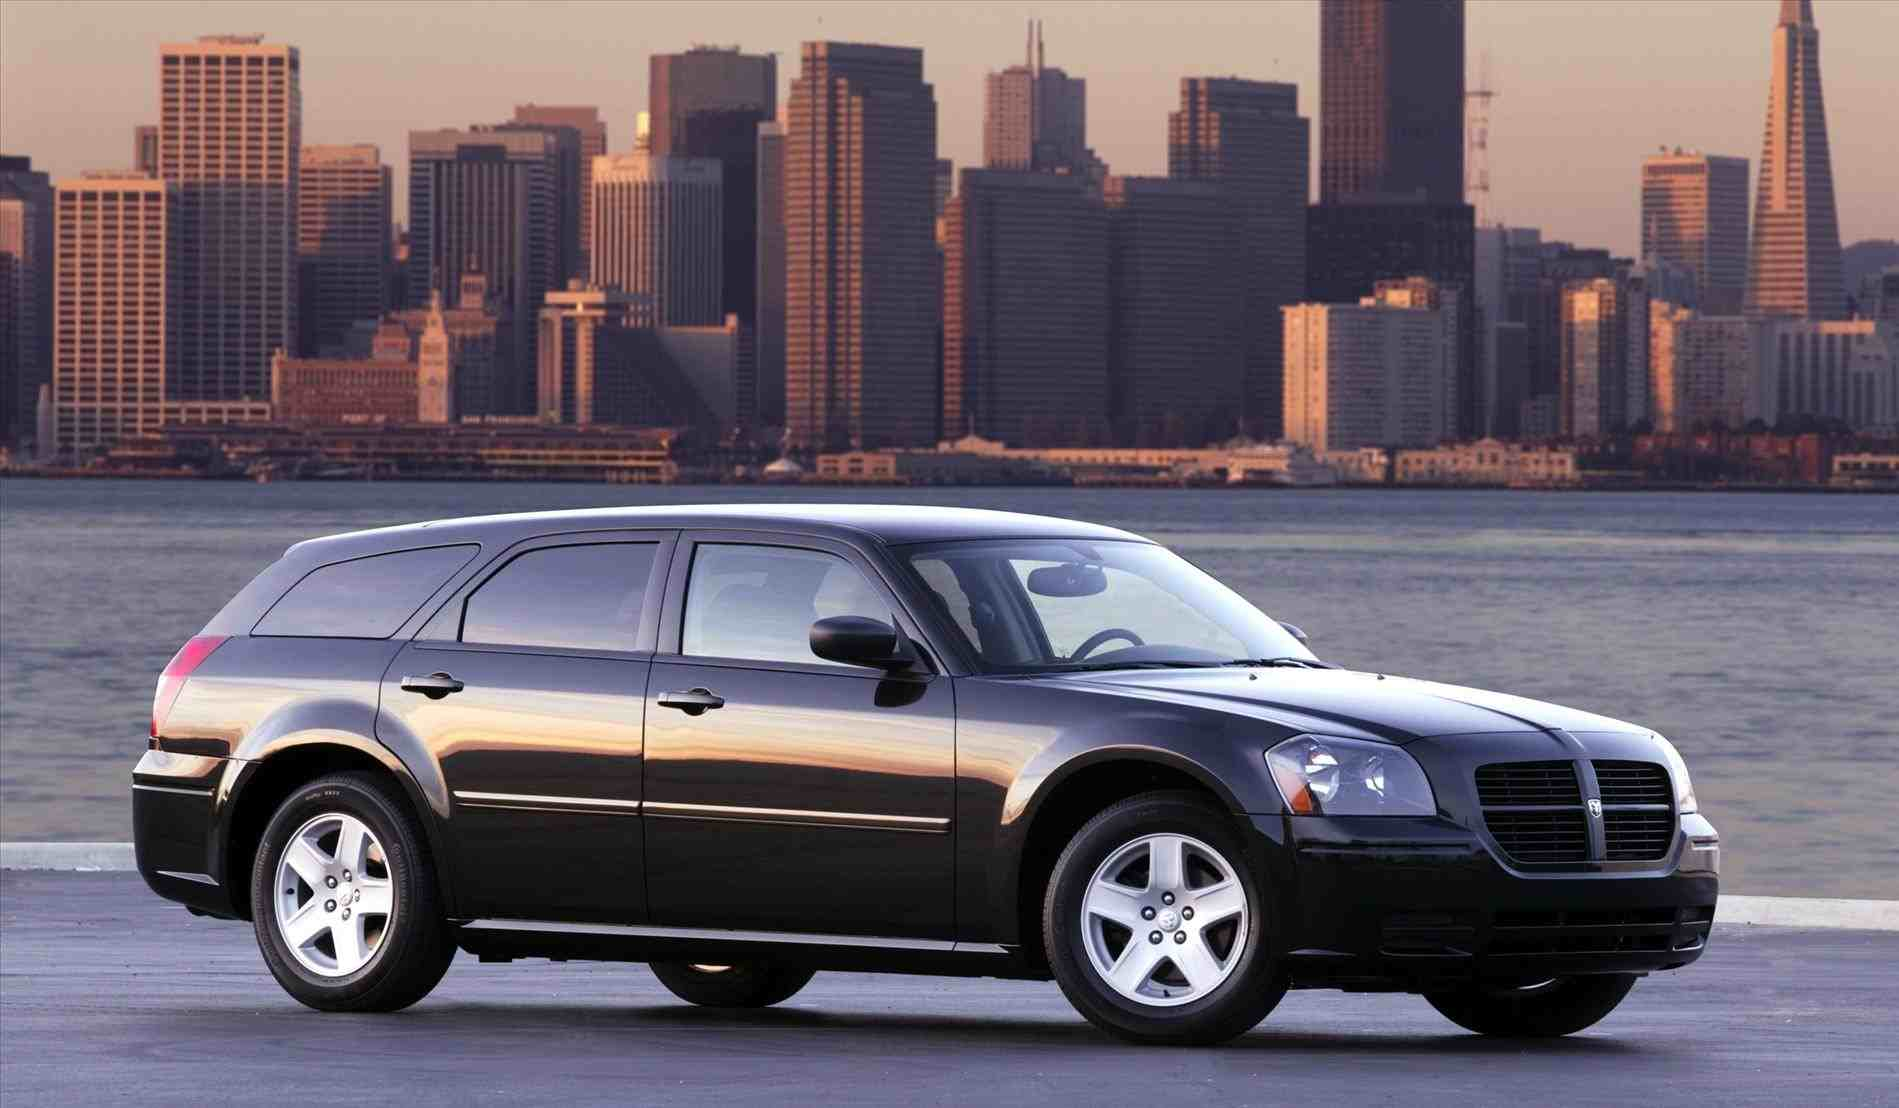 Best Used Car Under 5000 Awesome Best Used Car to Under 5000